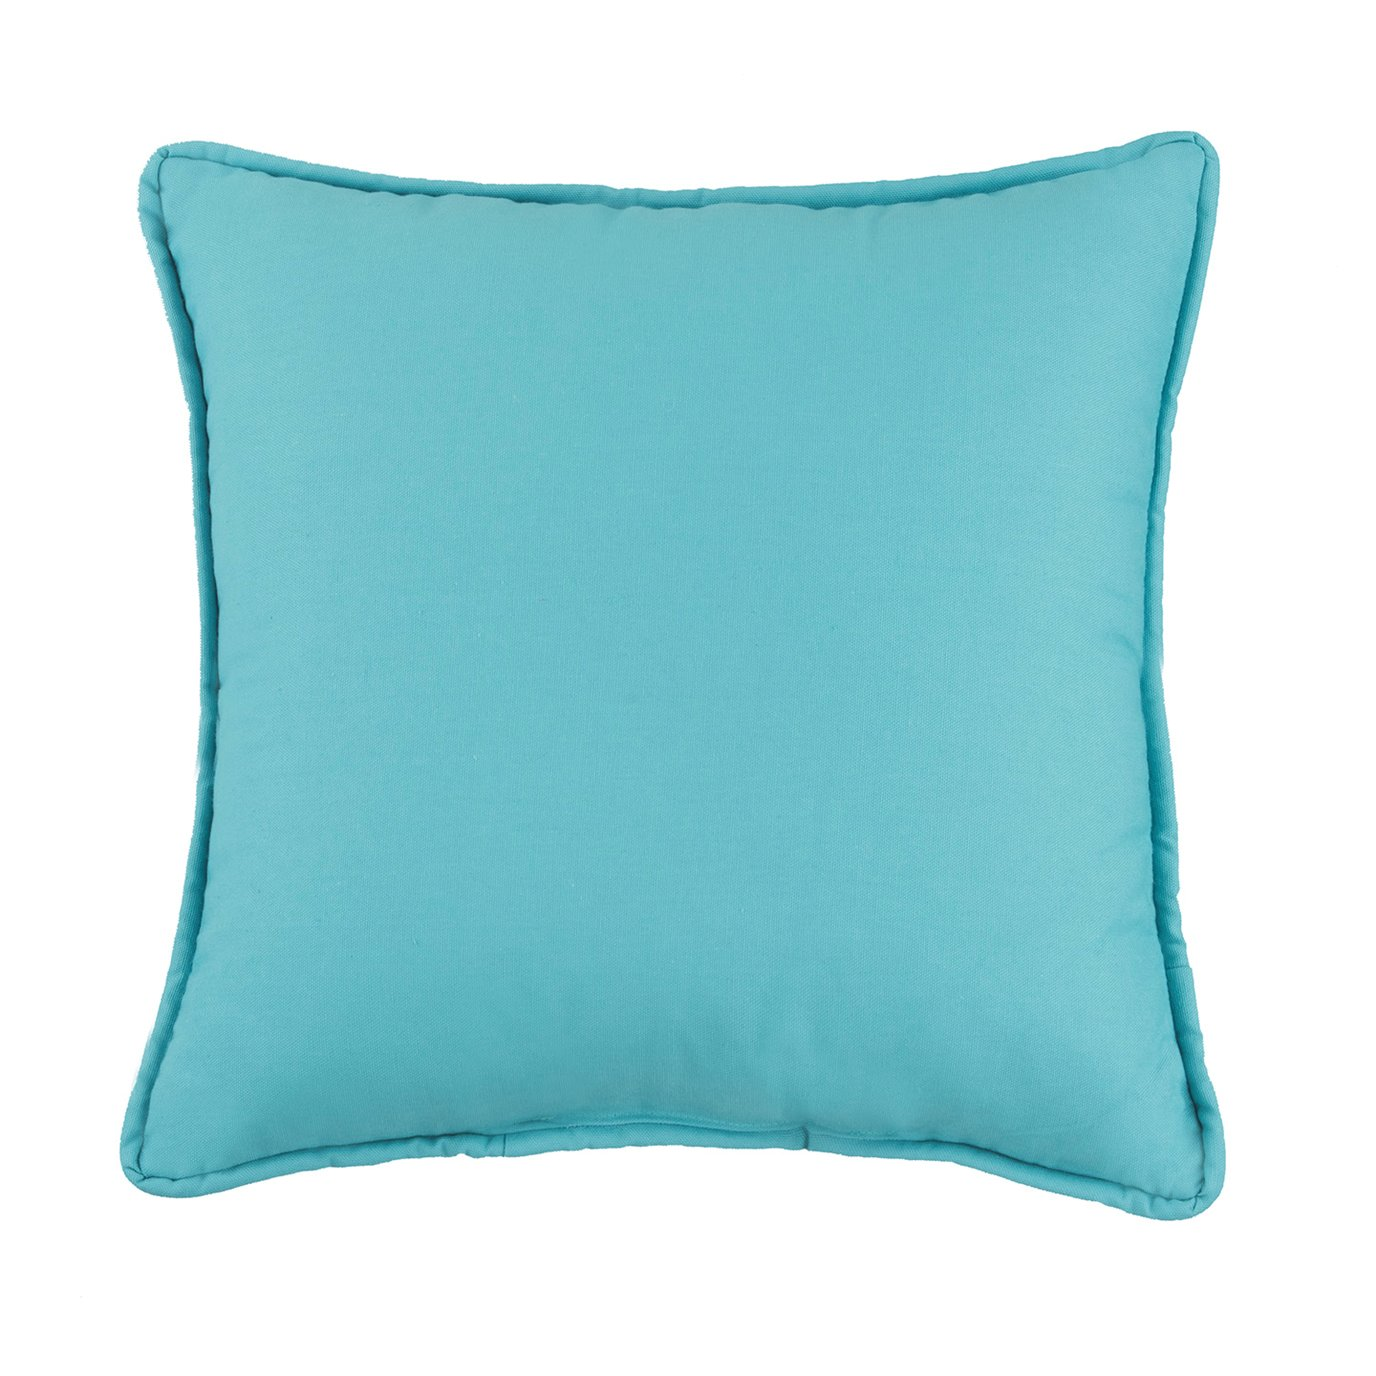 West Bay Solid Square Pillow - Teal